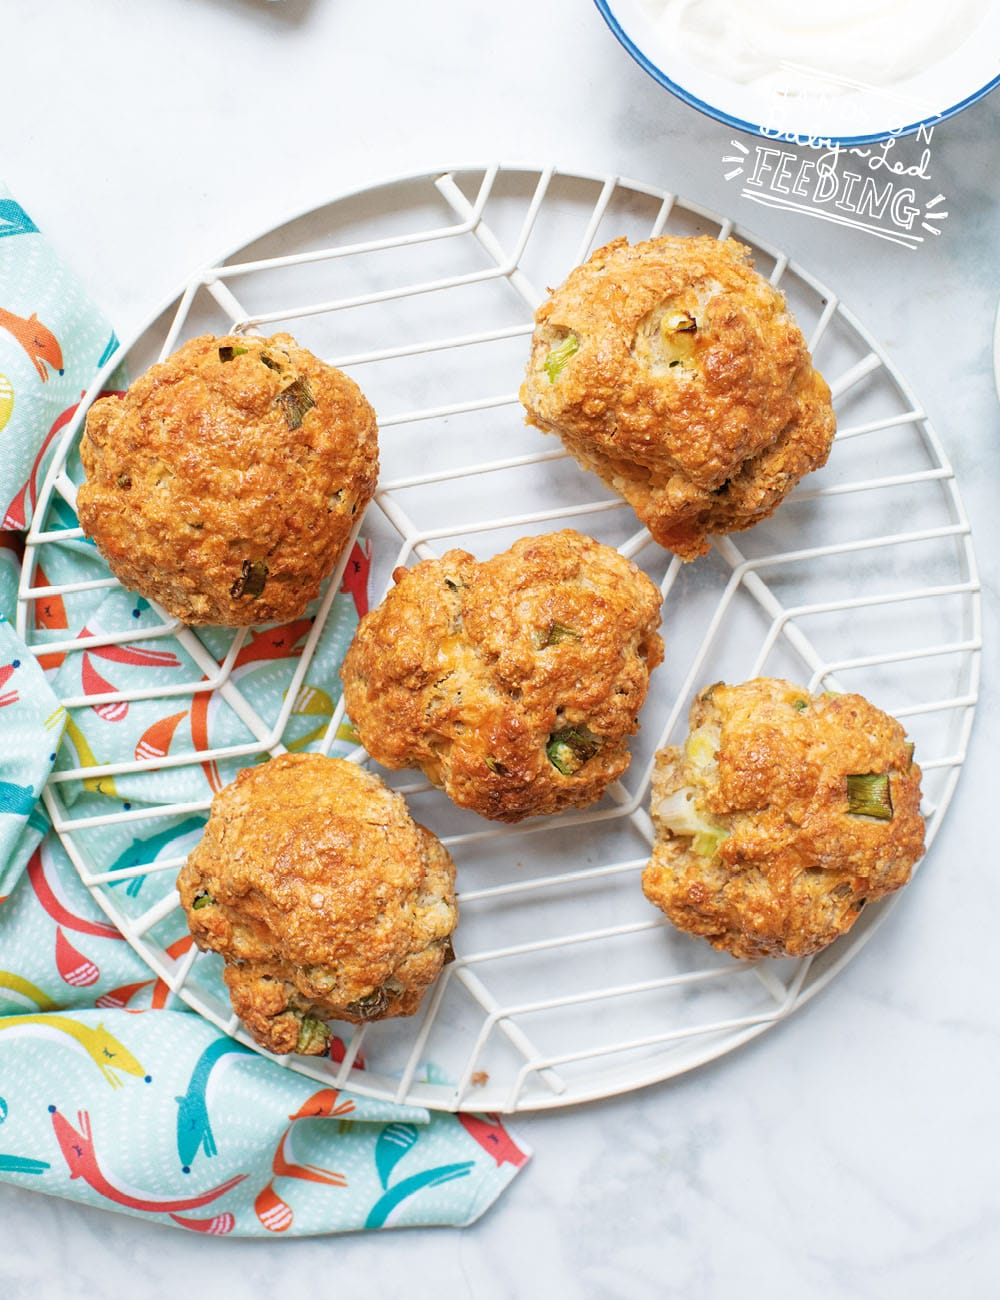 Savory snack for toddlers and babies! These savory scones are an amazing lunchbox idea and travel snack for kids! Scones are the perfect texture and size for little hands. Pack this savory finger food for your next adventure! #babyledfeeding #babyledweaning #scones #fingerfood #savorysnacks